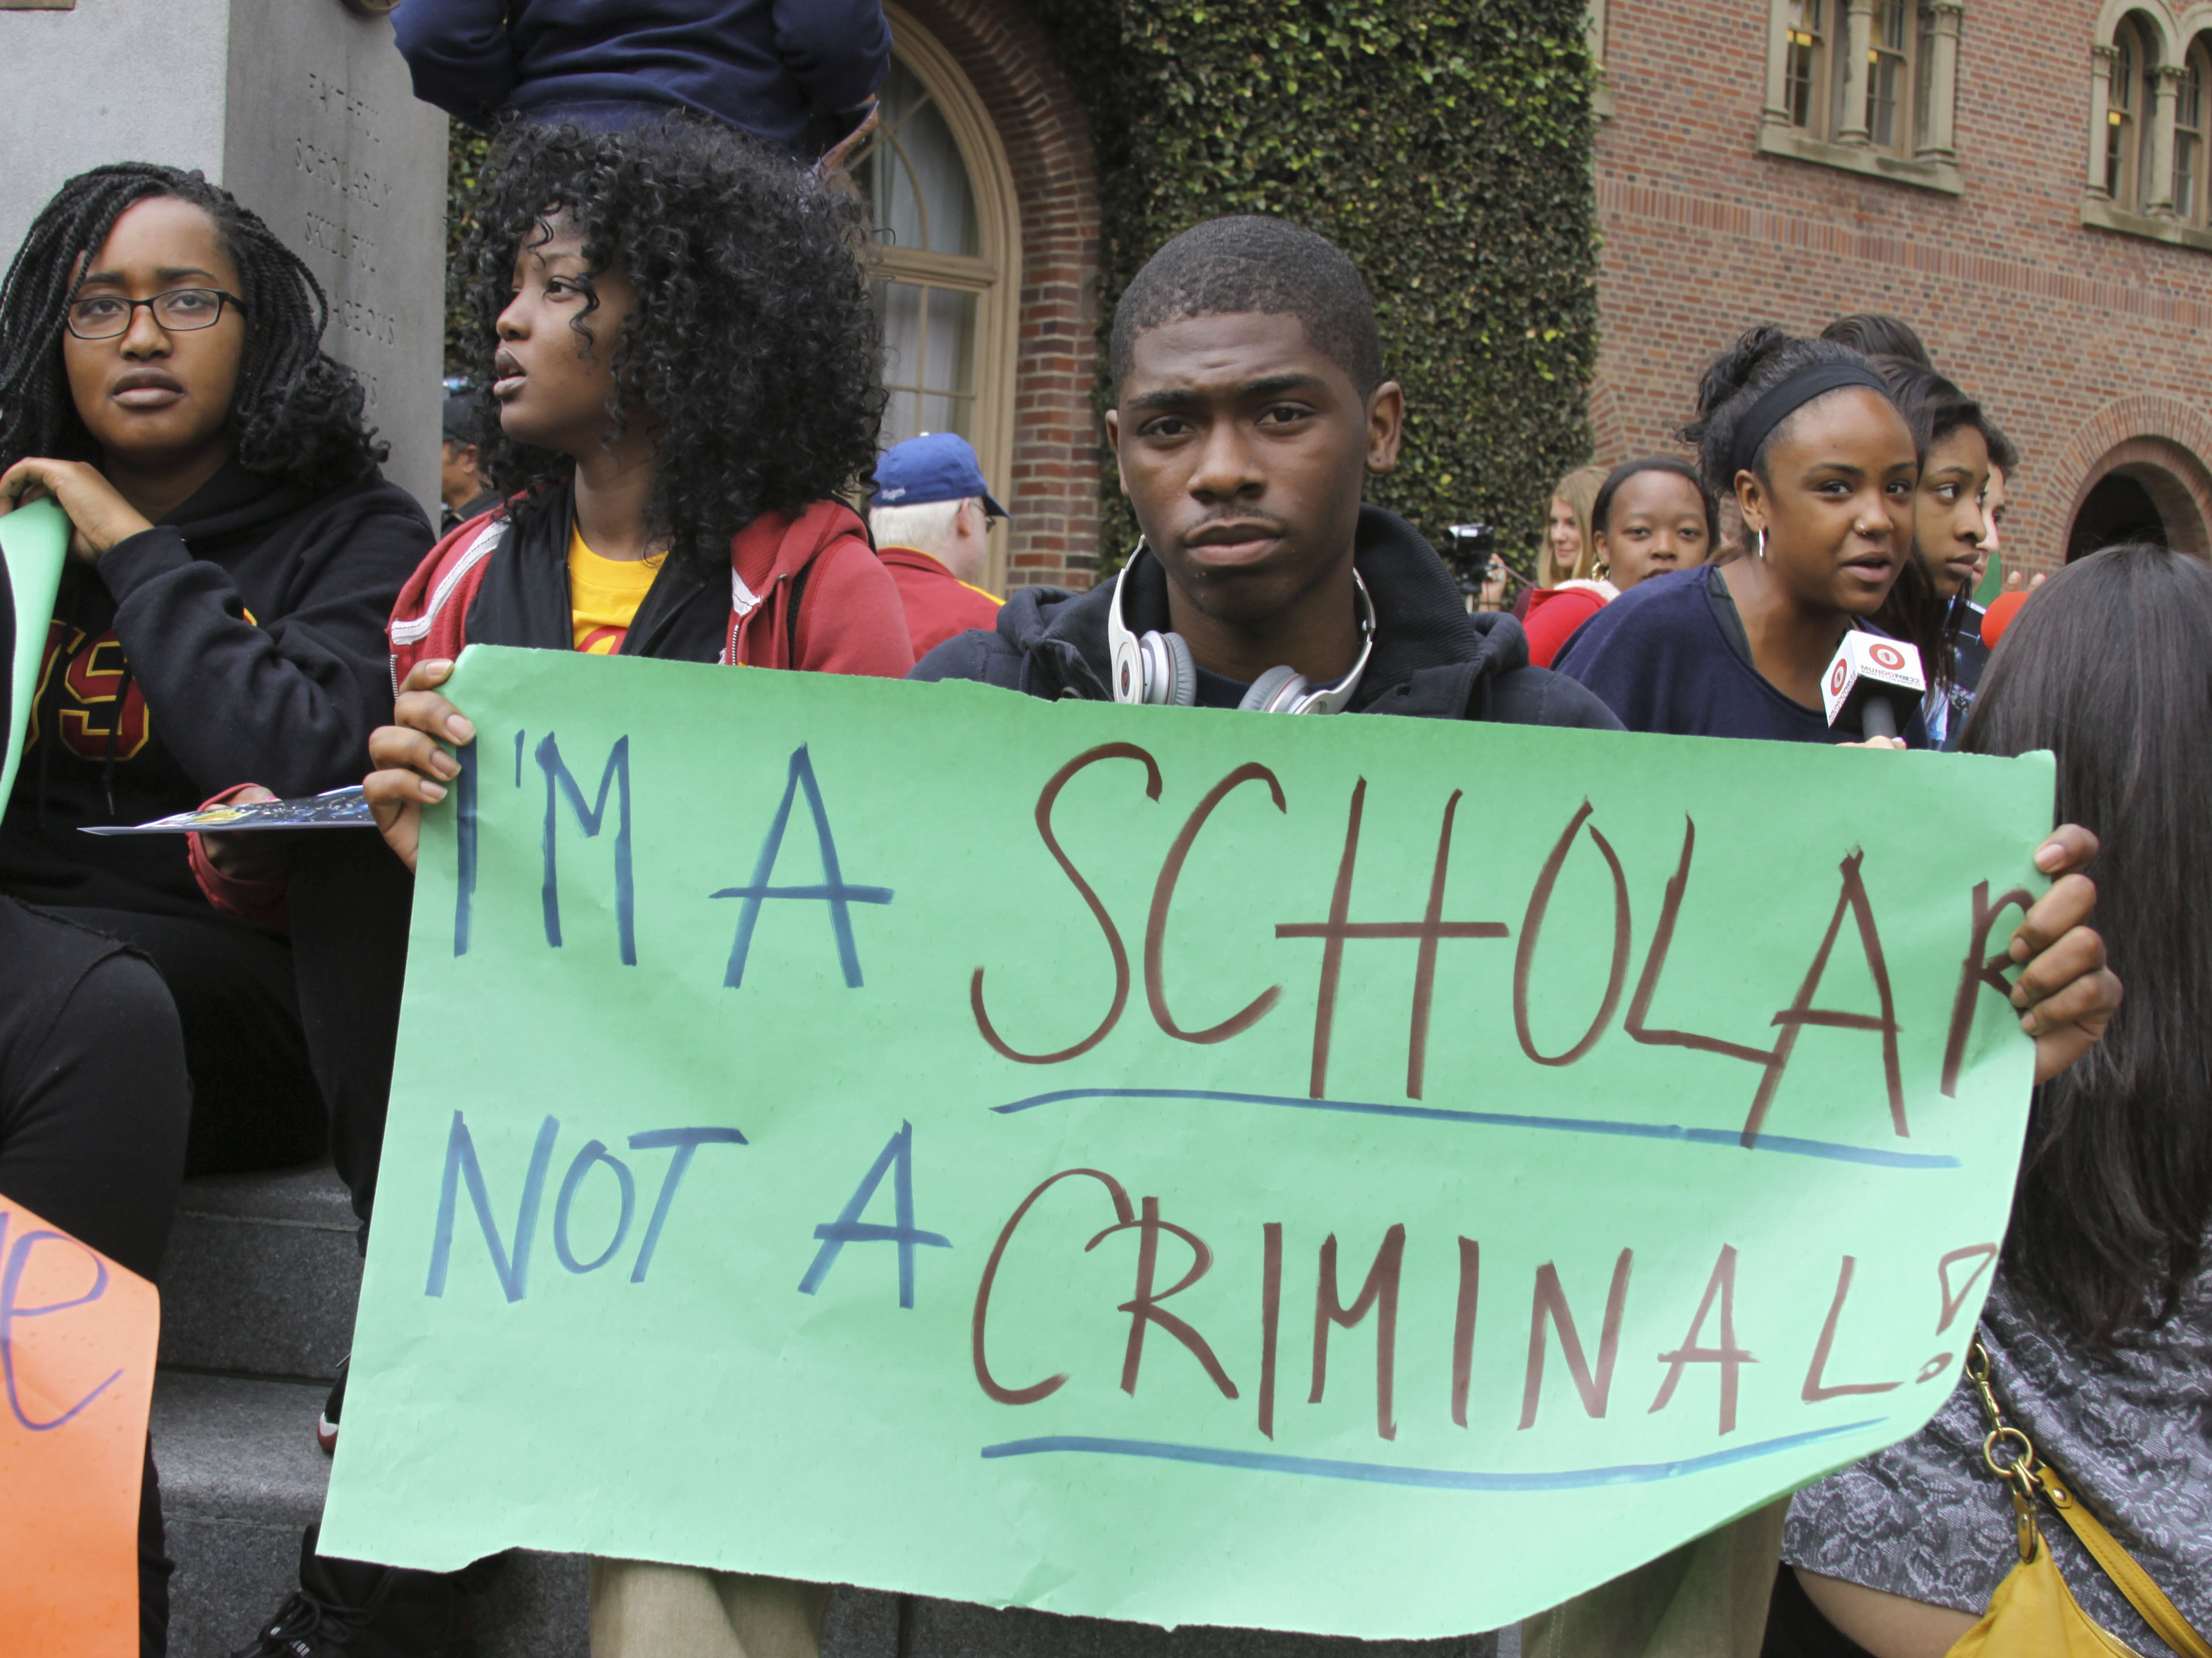 USC Students Allege Racial Profiling By LAPD | 88.5 WFDD